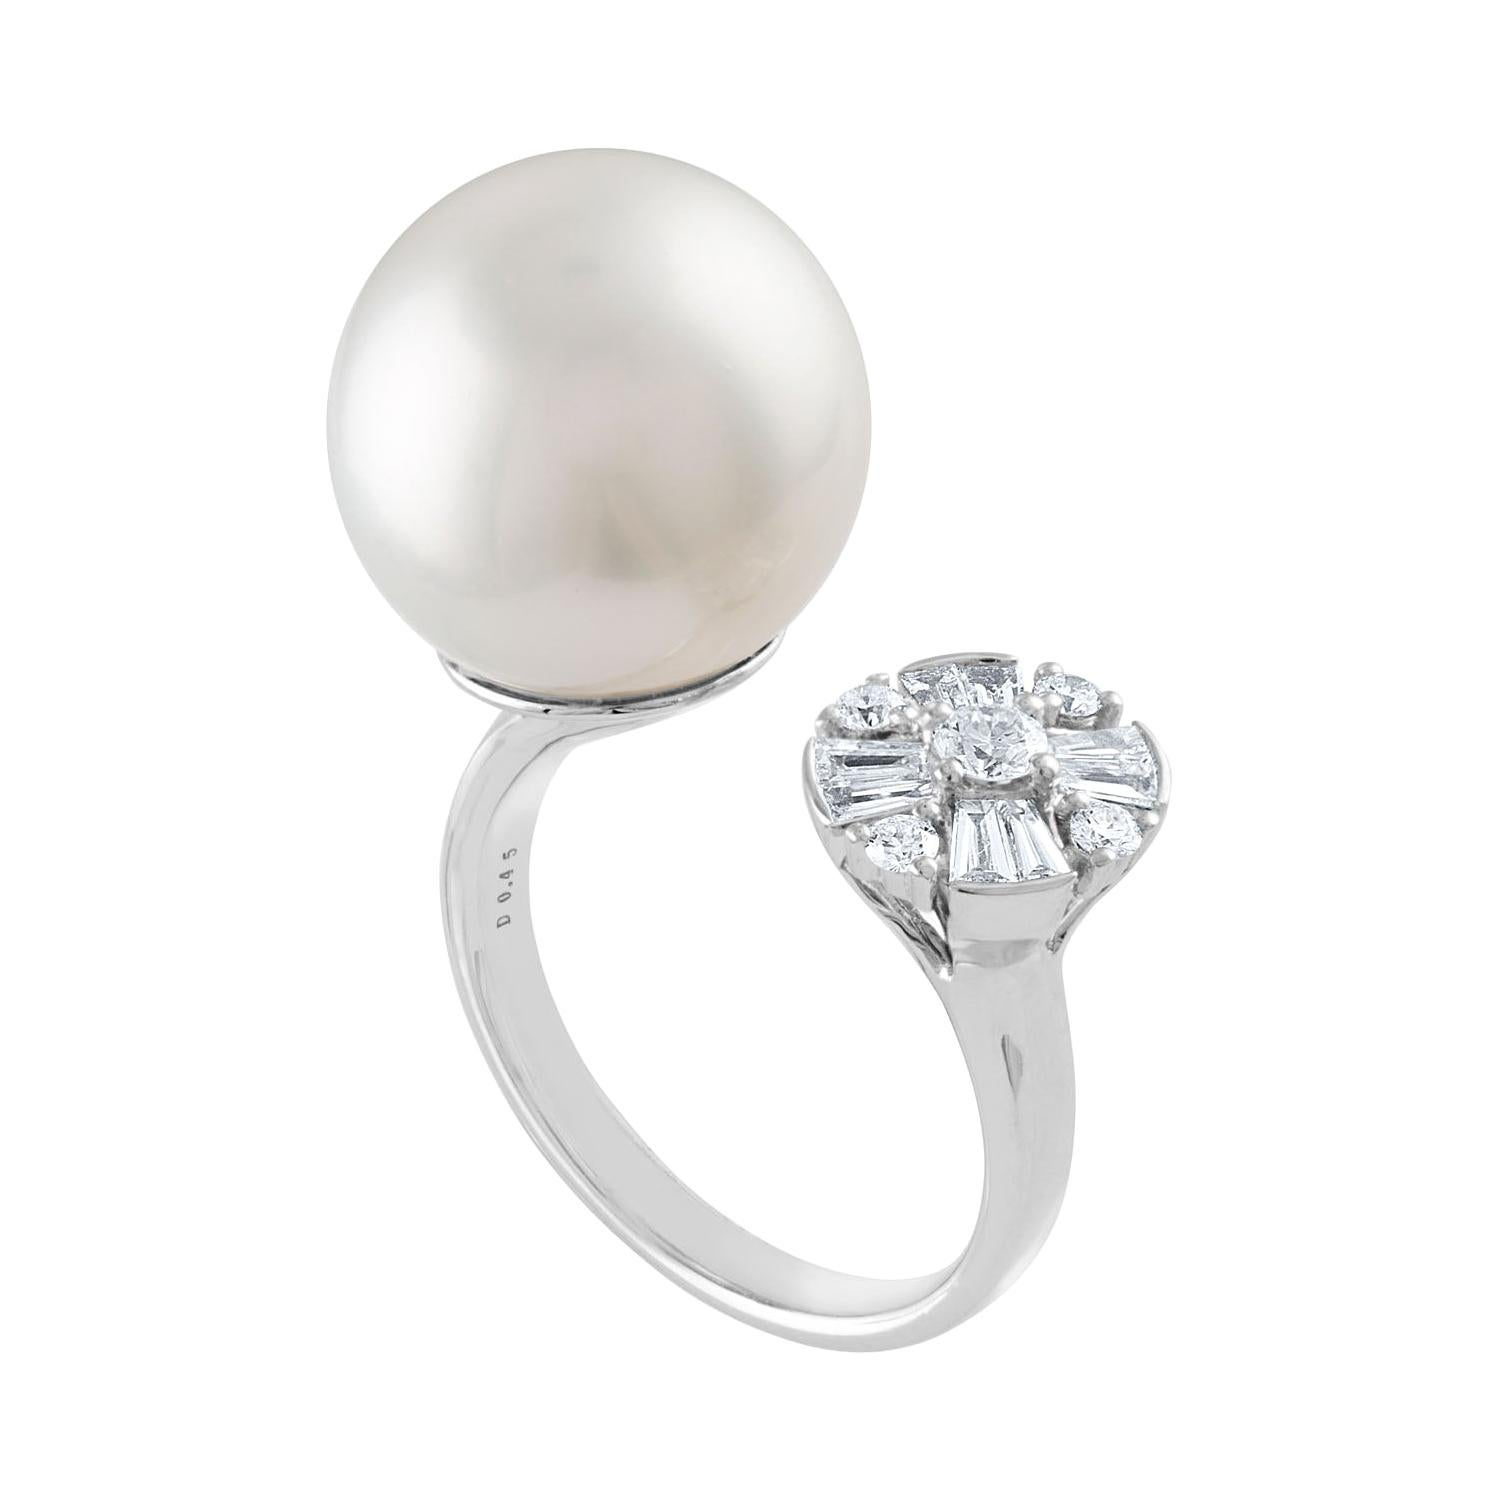 0.46 Carat Diamond and South Sea Pearl Between The Finger Gold Ring